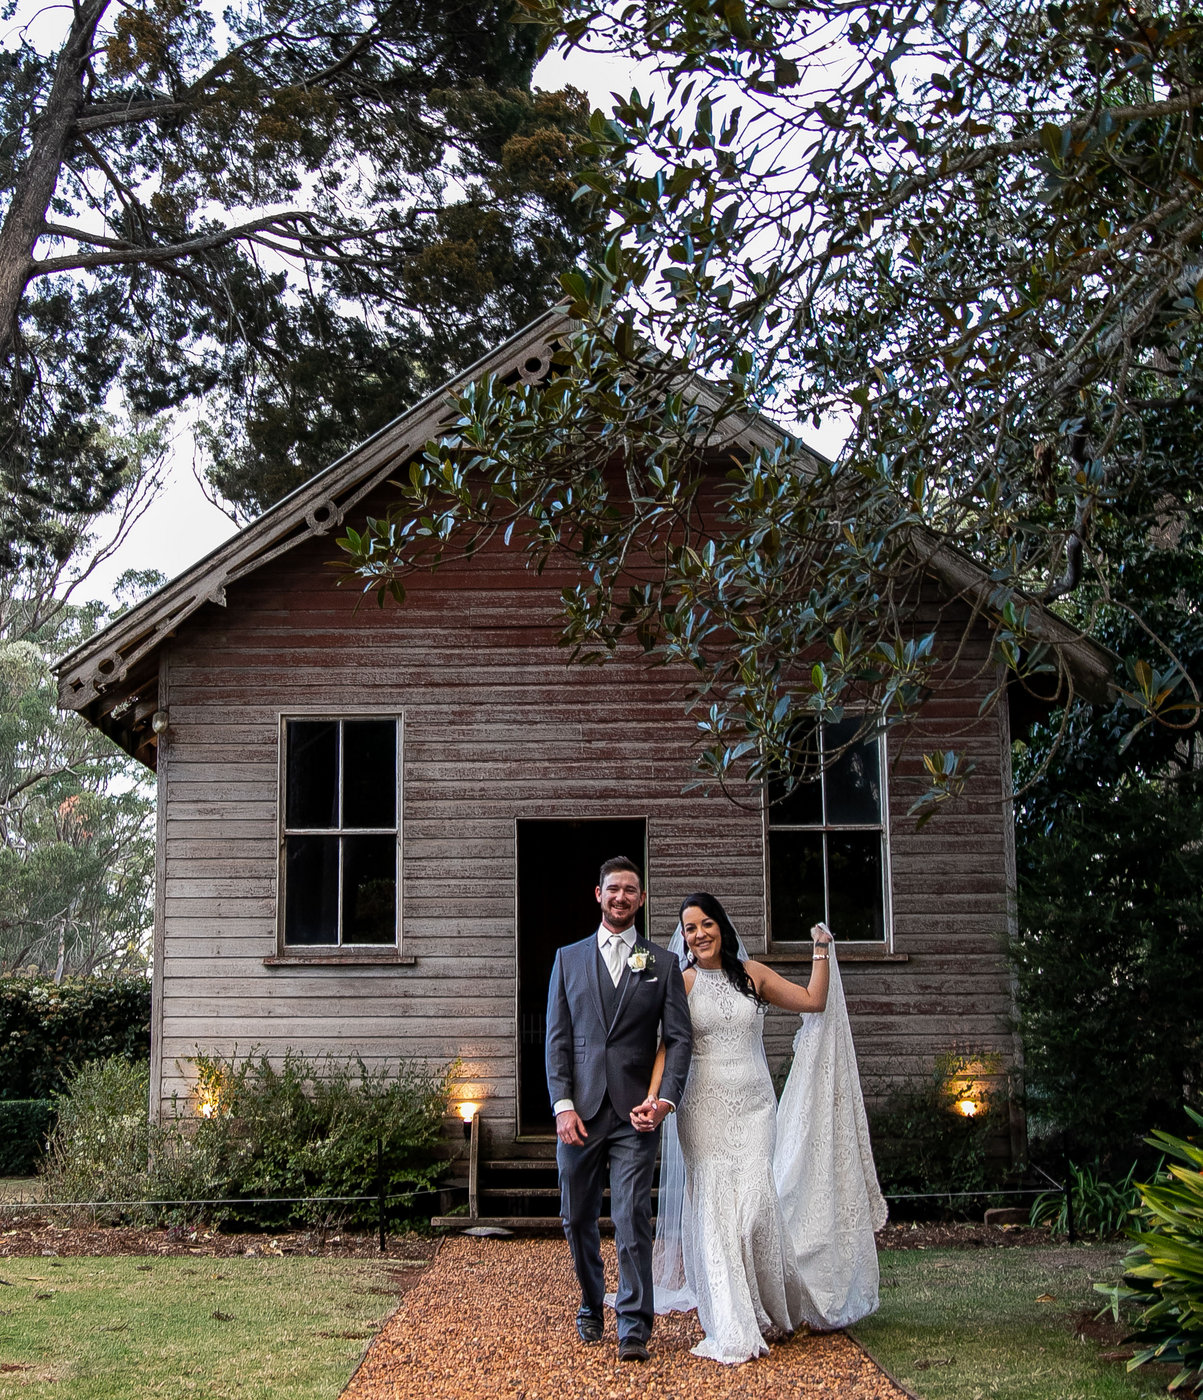 Wedding Photography couple in front of cottage